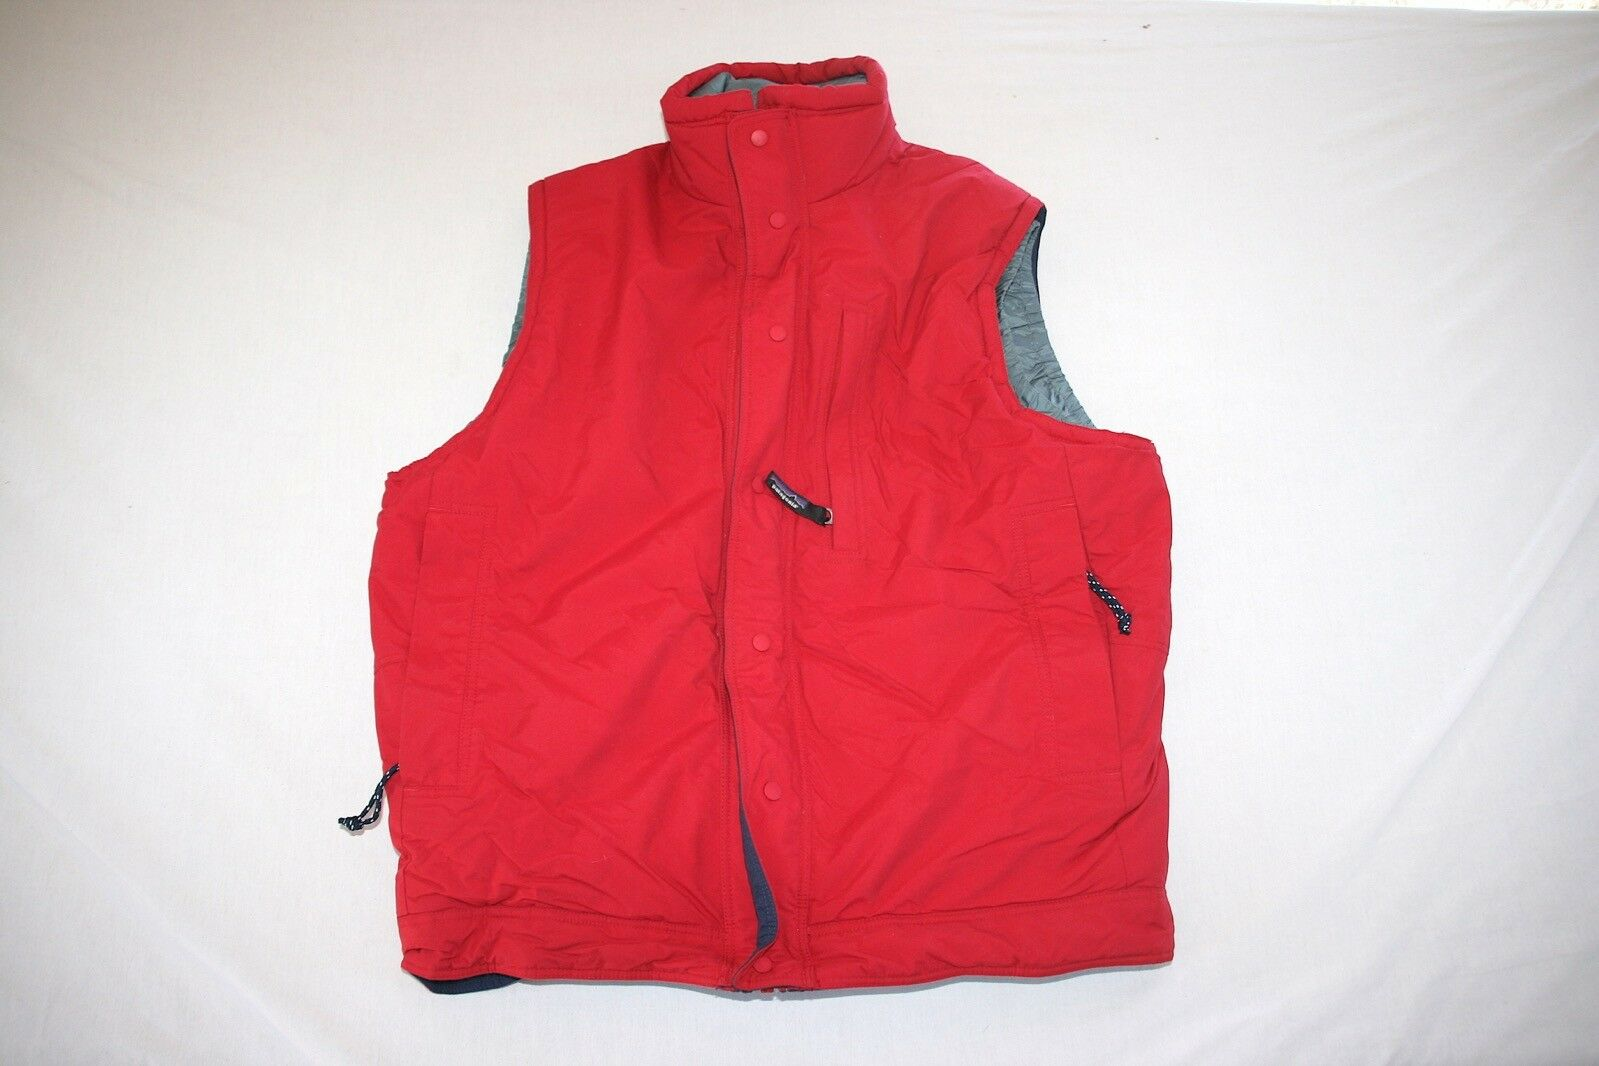 Patagonia Vest Lined Nylon Cold Weather Men S Red NEW